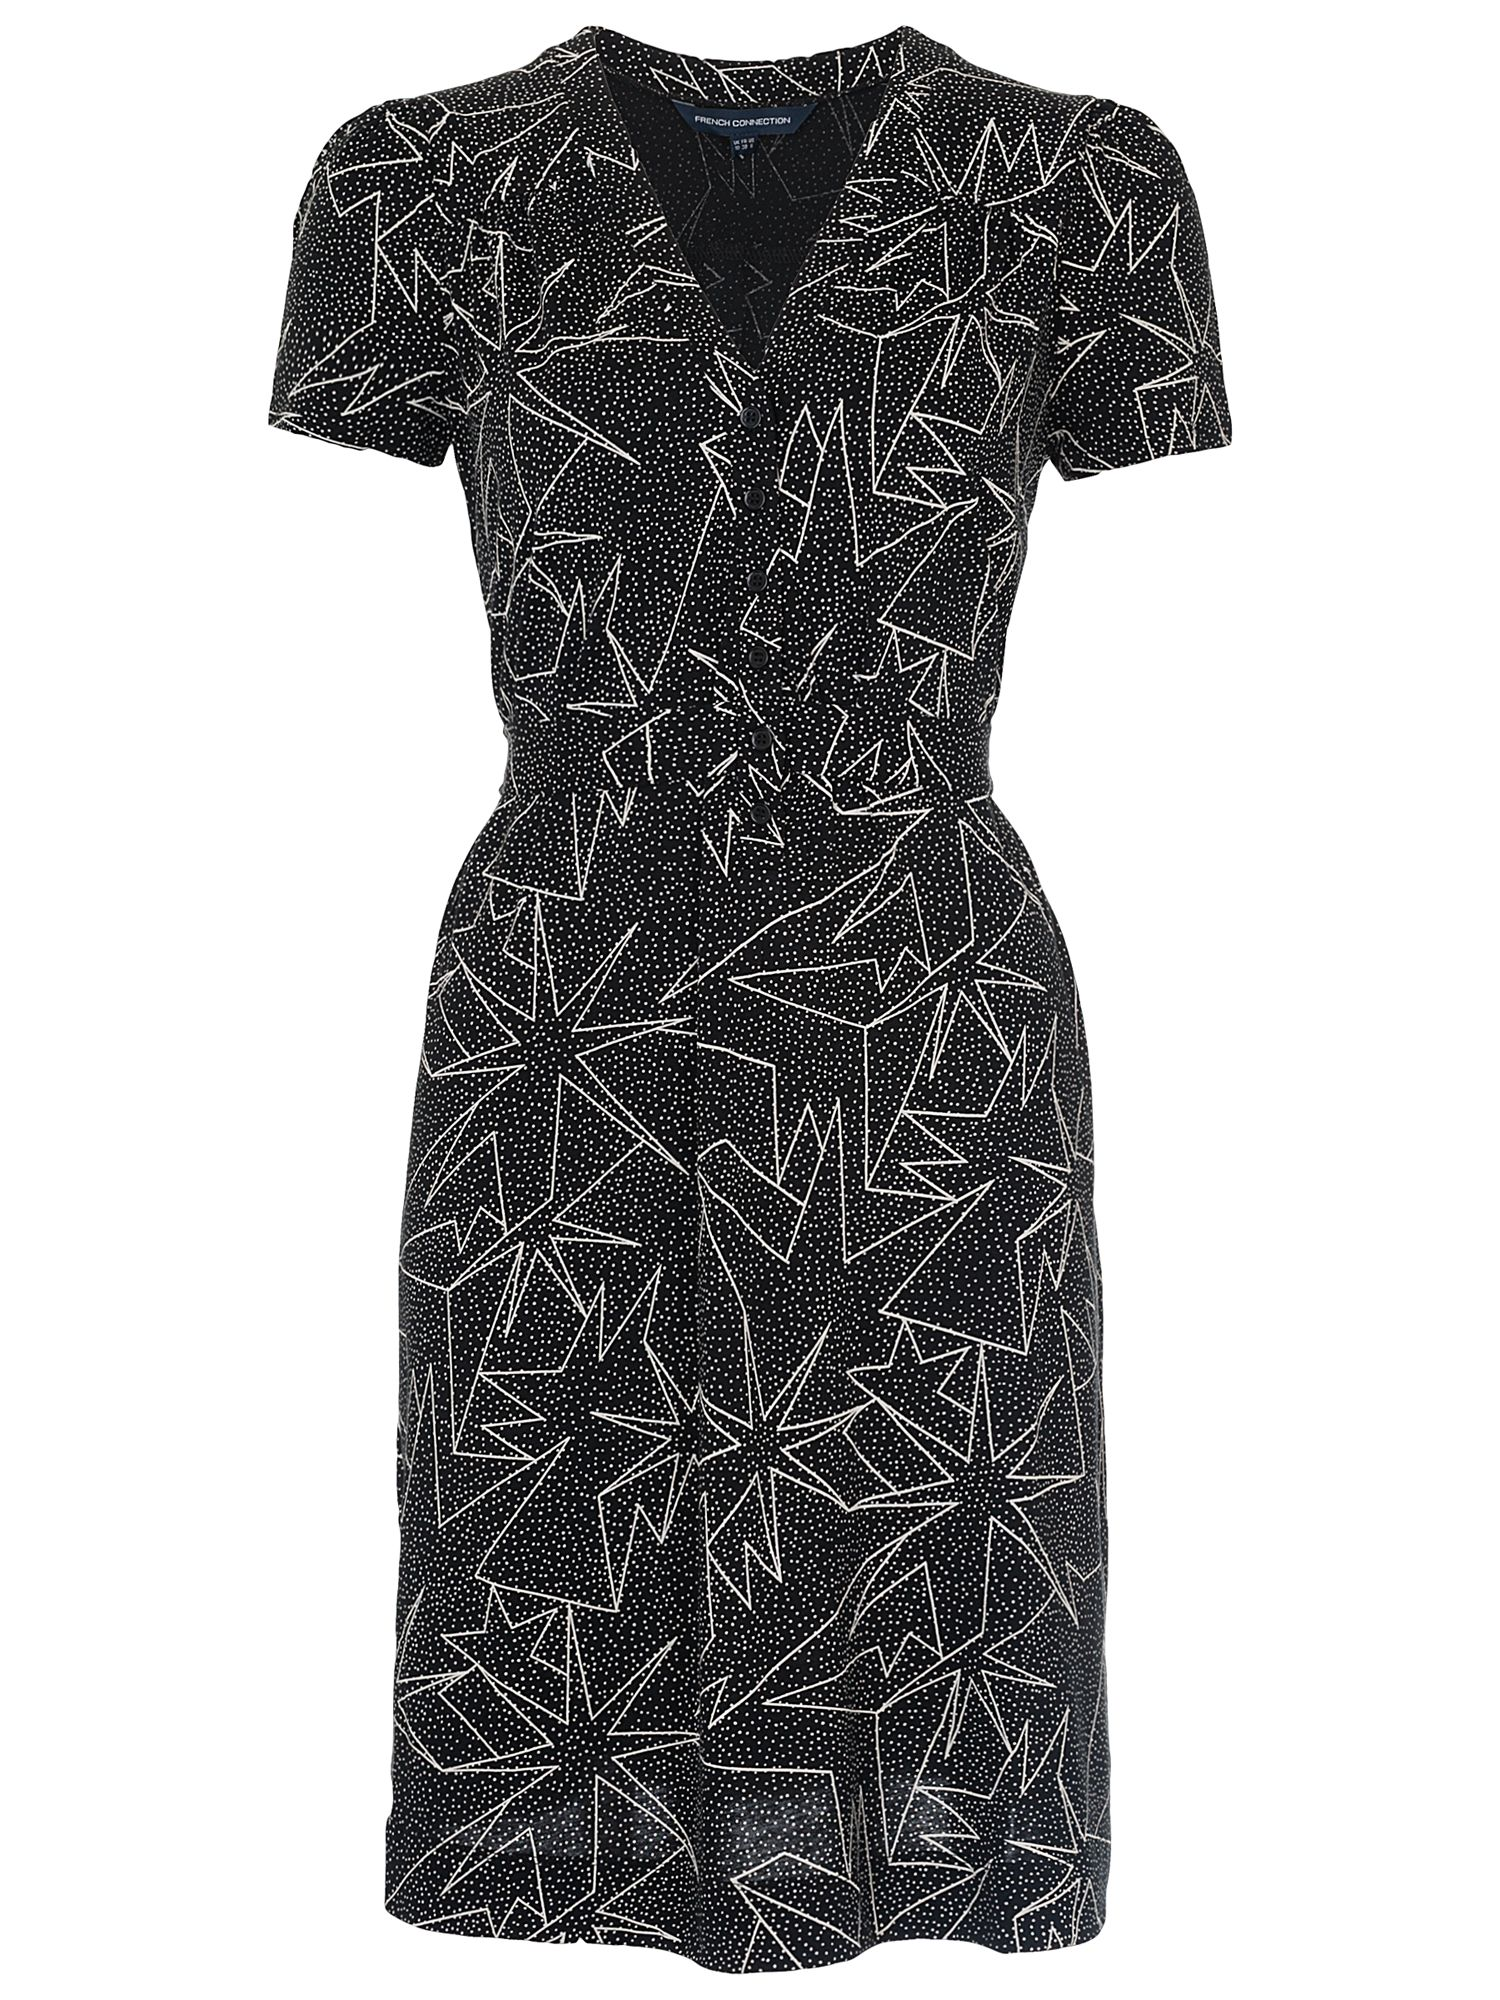 french connection star jersey dress black/white, french, connection, star, jersey, dress, black/white, french connection, 8|16|12|10|14|6, women, womens dresses, 1911190